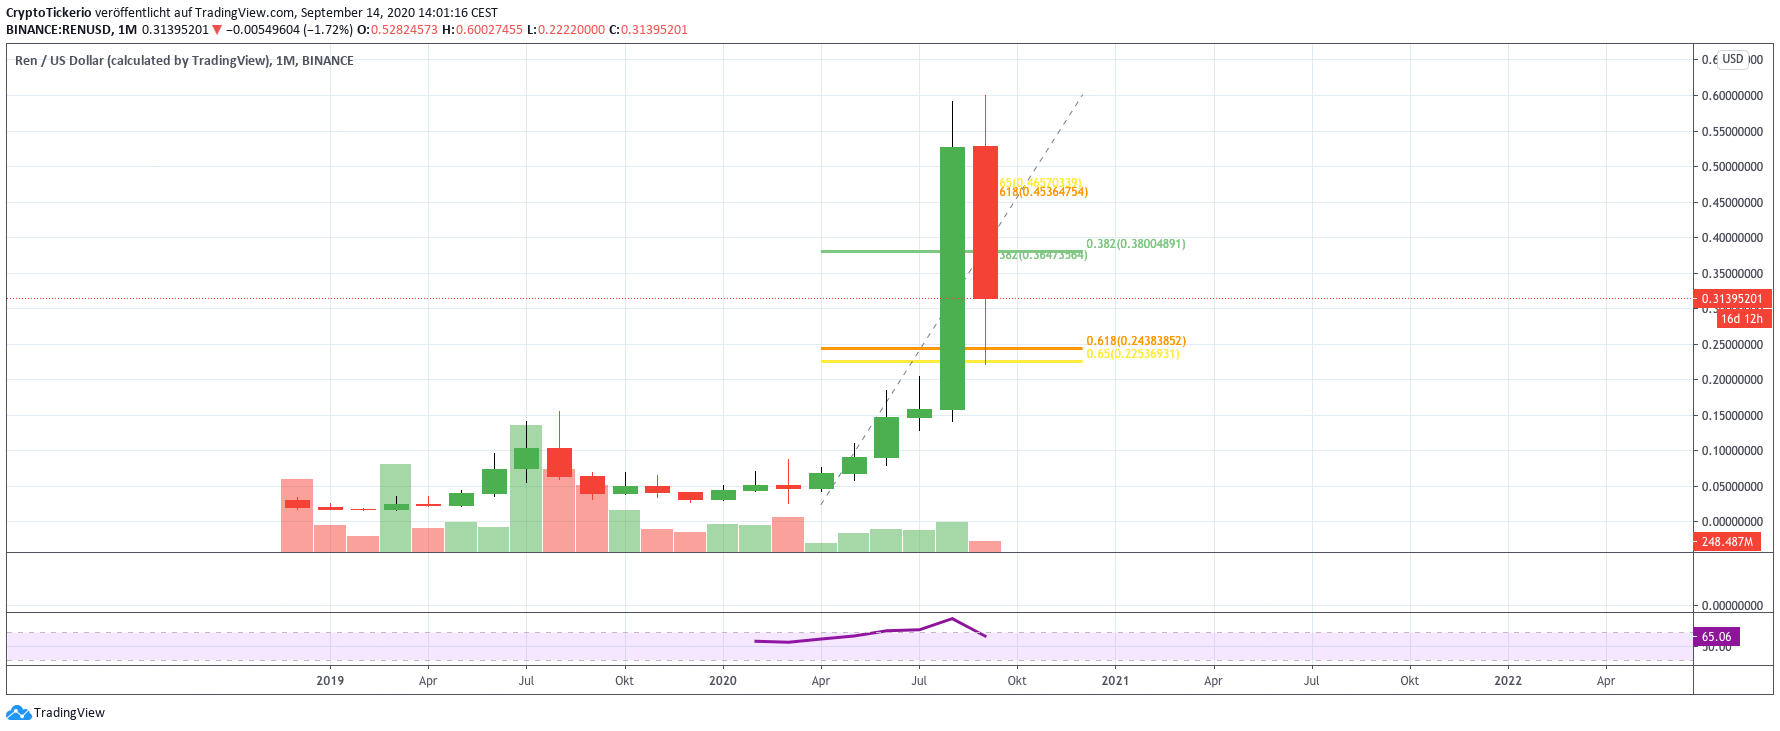 REN/USD monthly price chart